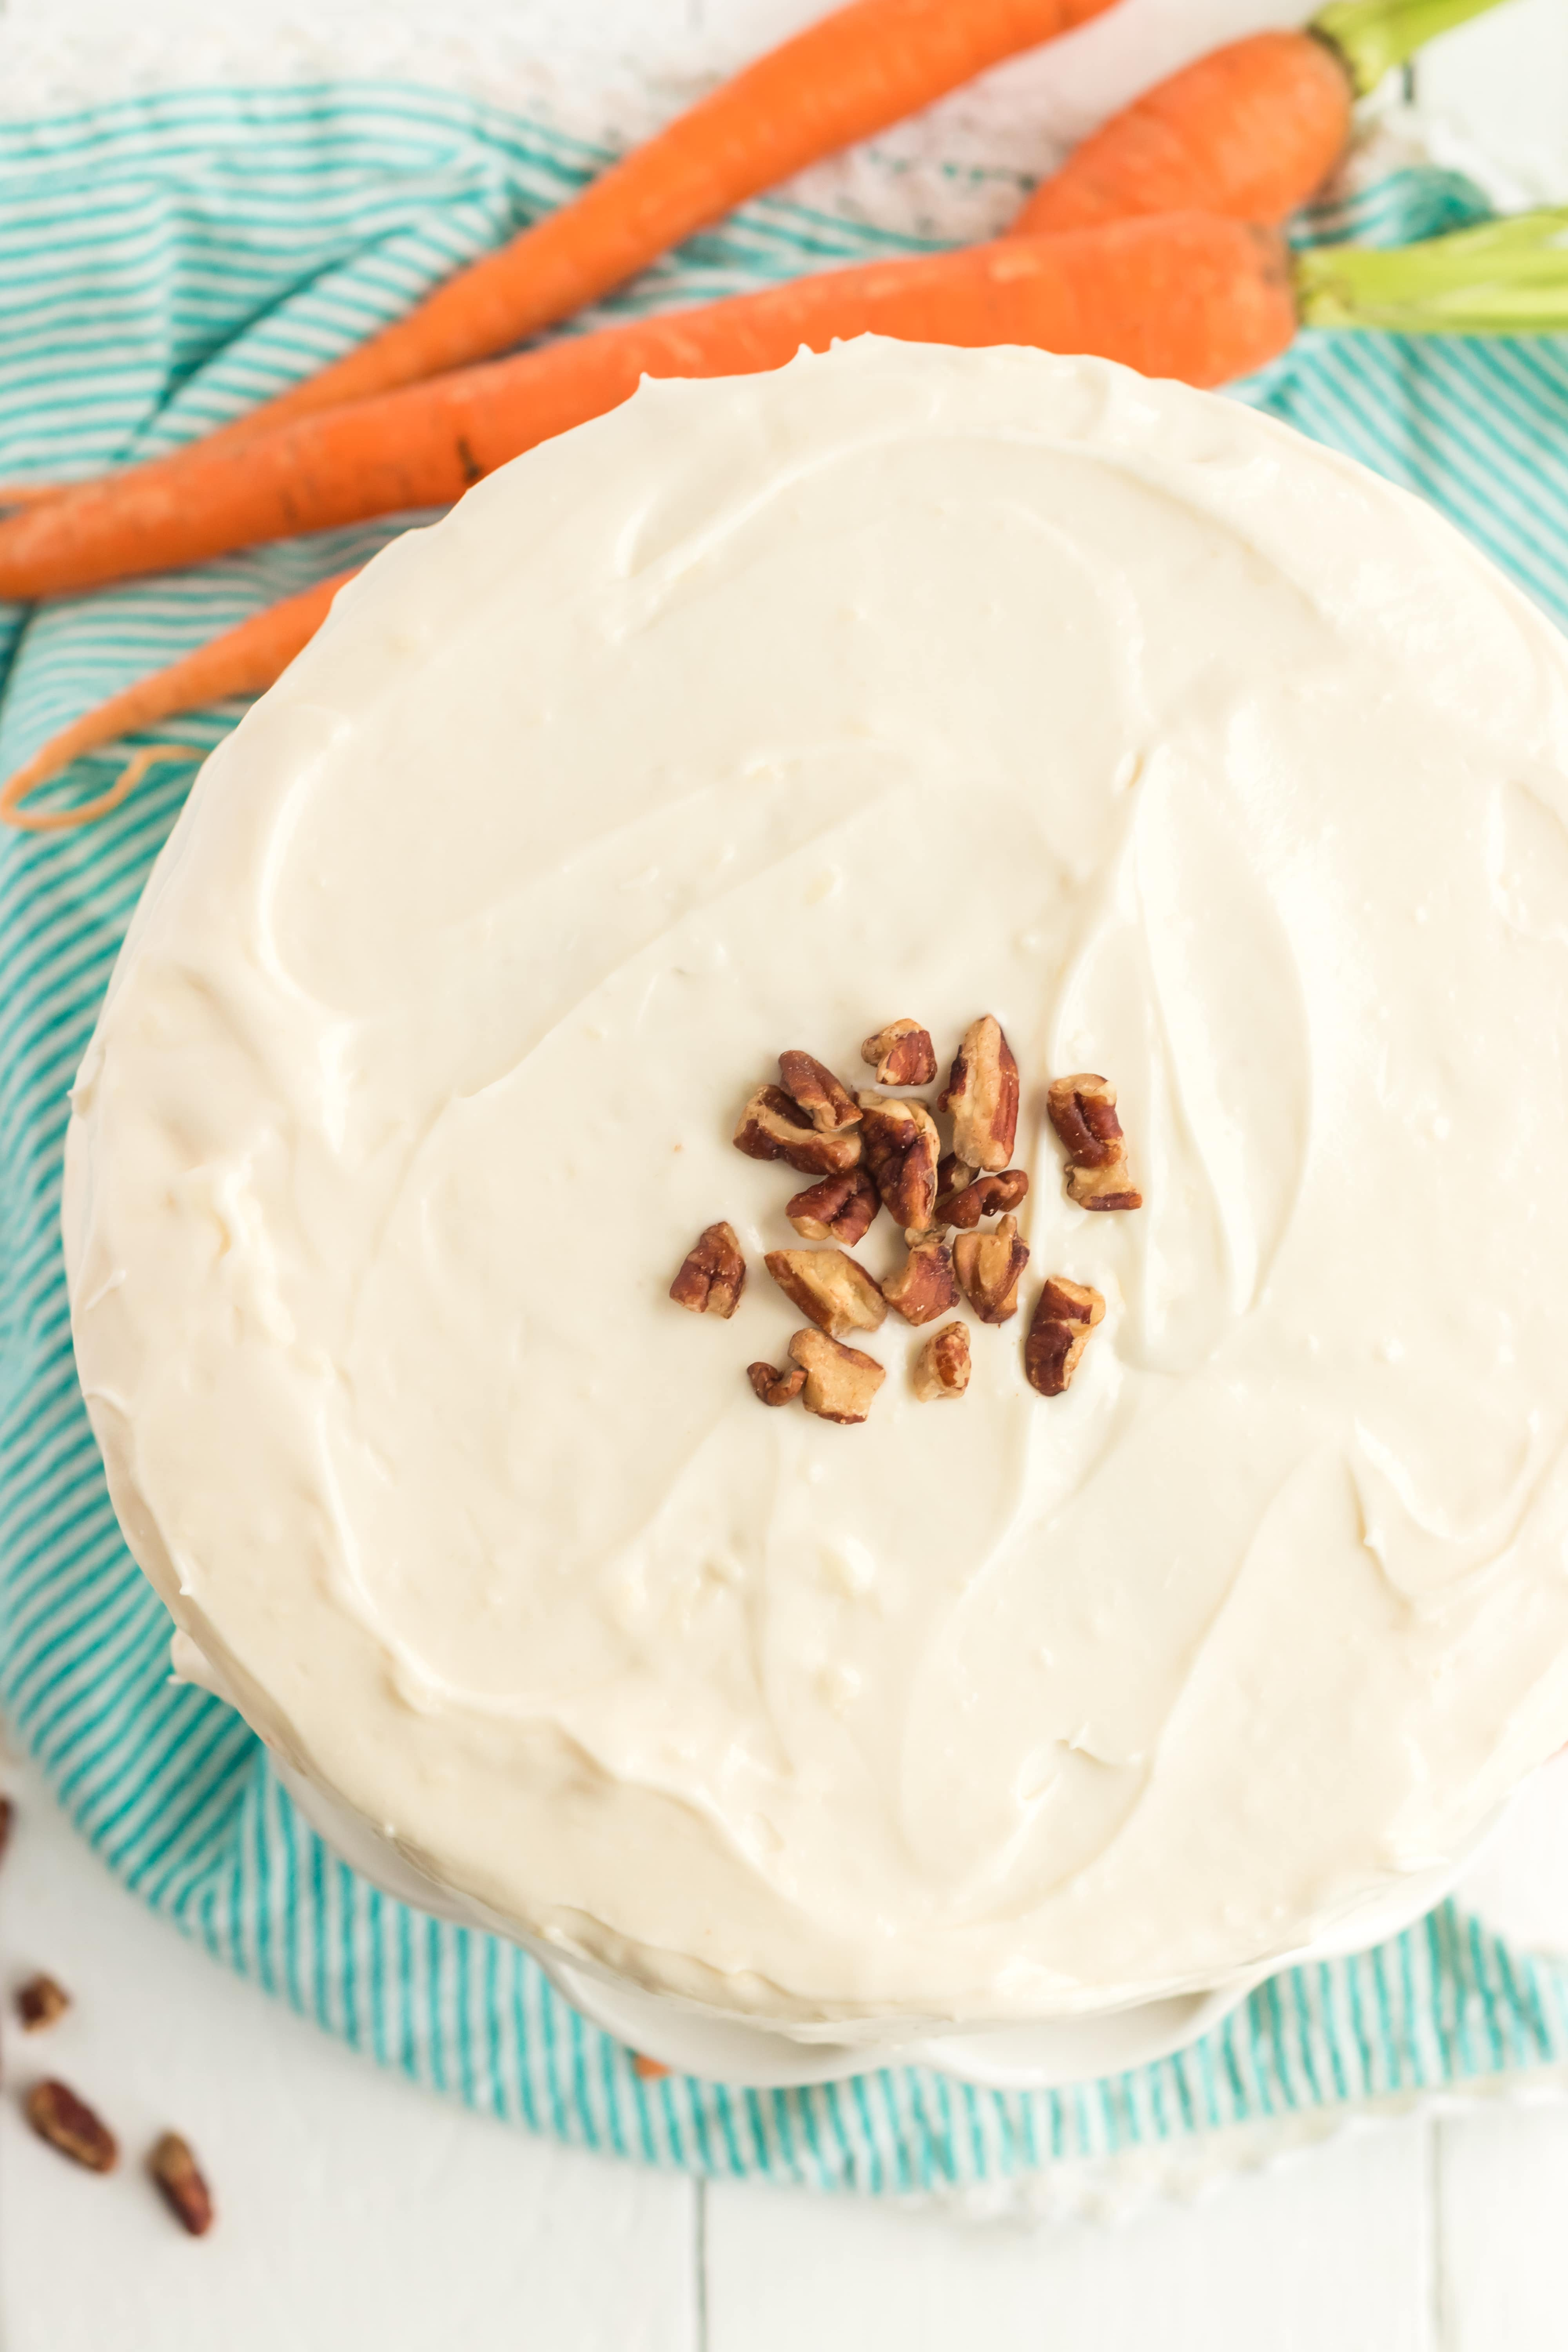 Carrot cake with icing and decorations on it